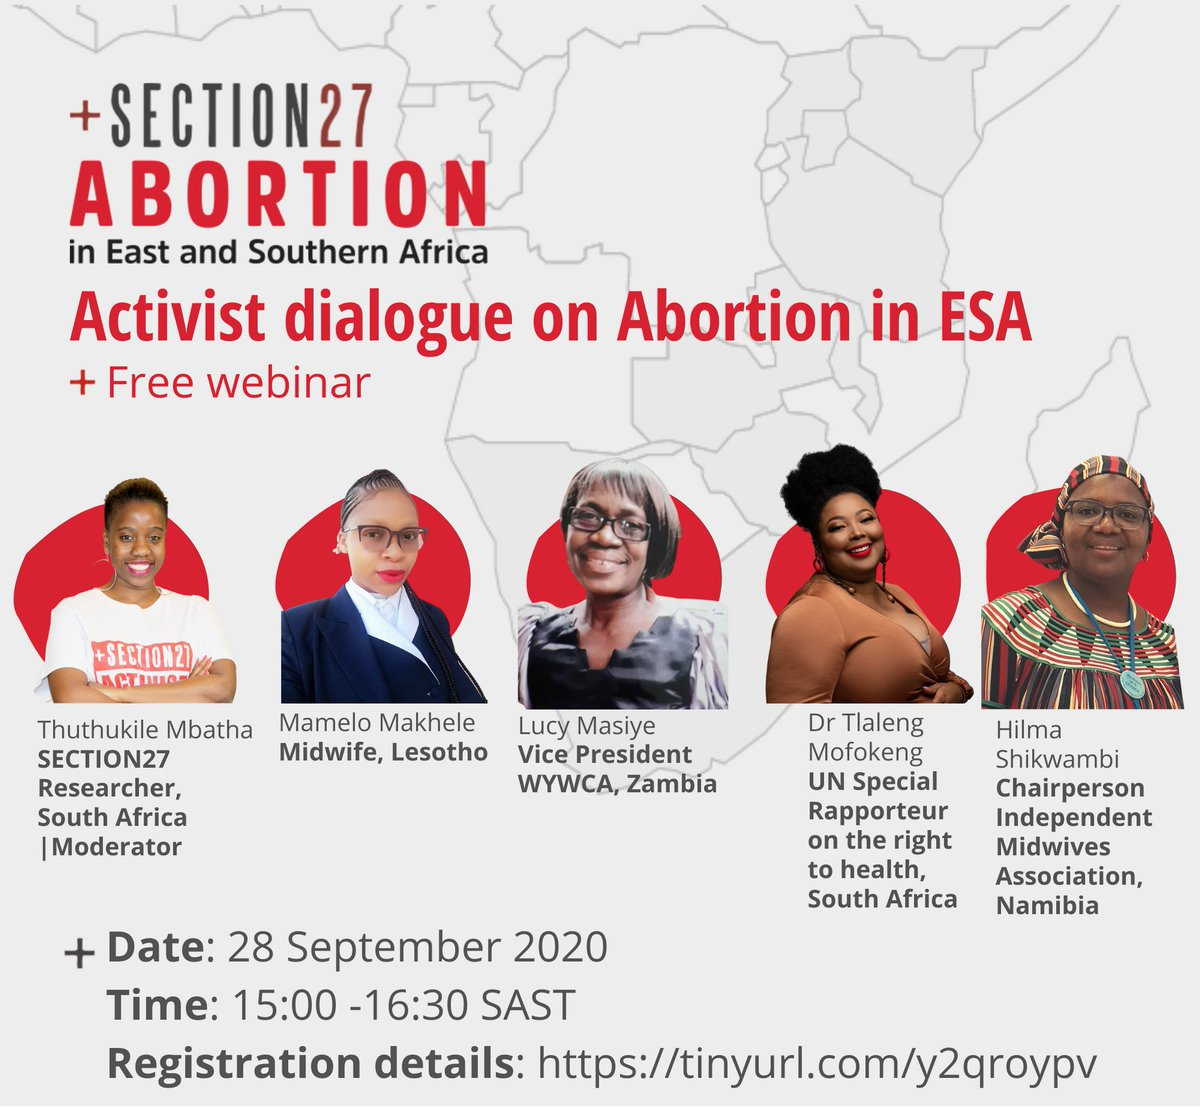 Free webinar on an NB topic on #SafeAbortionDay w/ inspirational speakers. A woman's right to choose is her right. Finish & klaar. Today, tomorrow, everyday. No if's & but's. #SheDecides. @SA_AIDSCOUNCIL @NACOSANet @FPD_SA @Yplus_Global @ICWEastAfrica @drtlaleng @FirstLadyNam https://t.co/SlNm5OyAqU